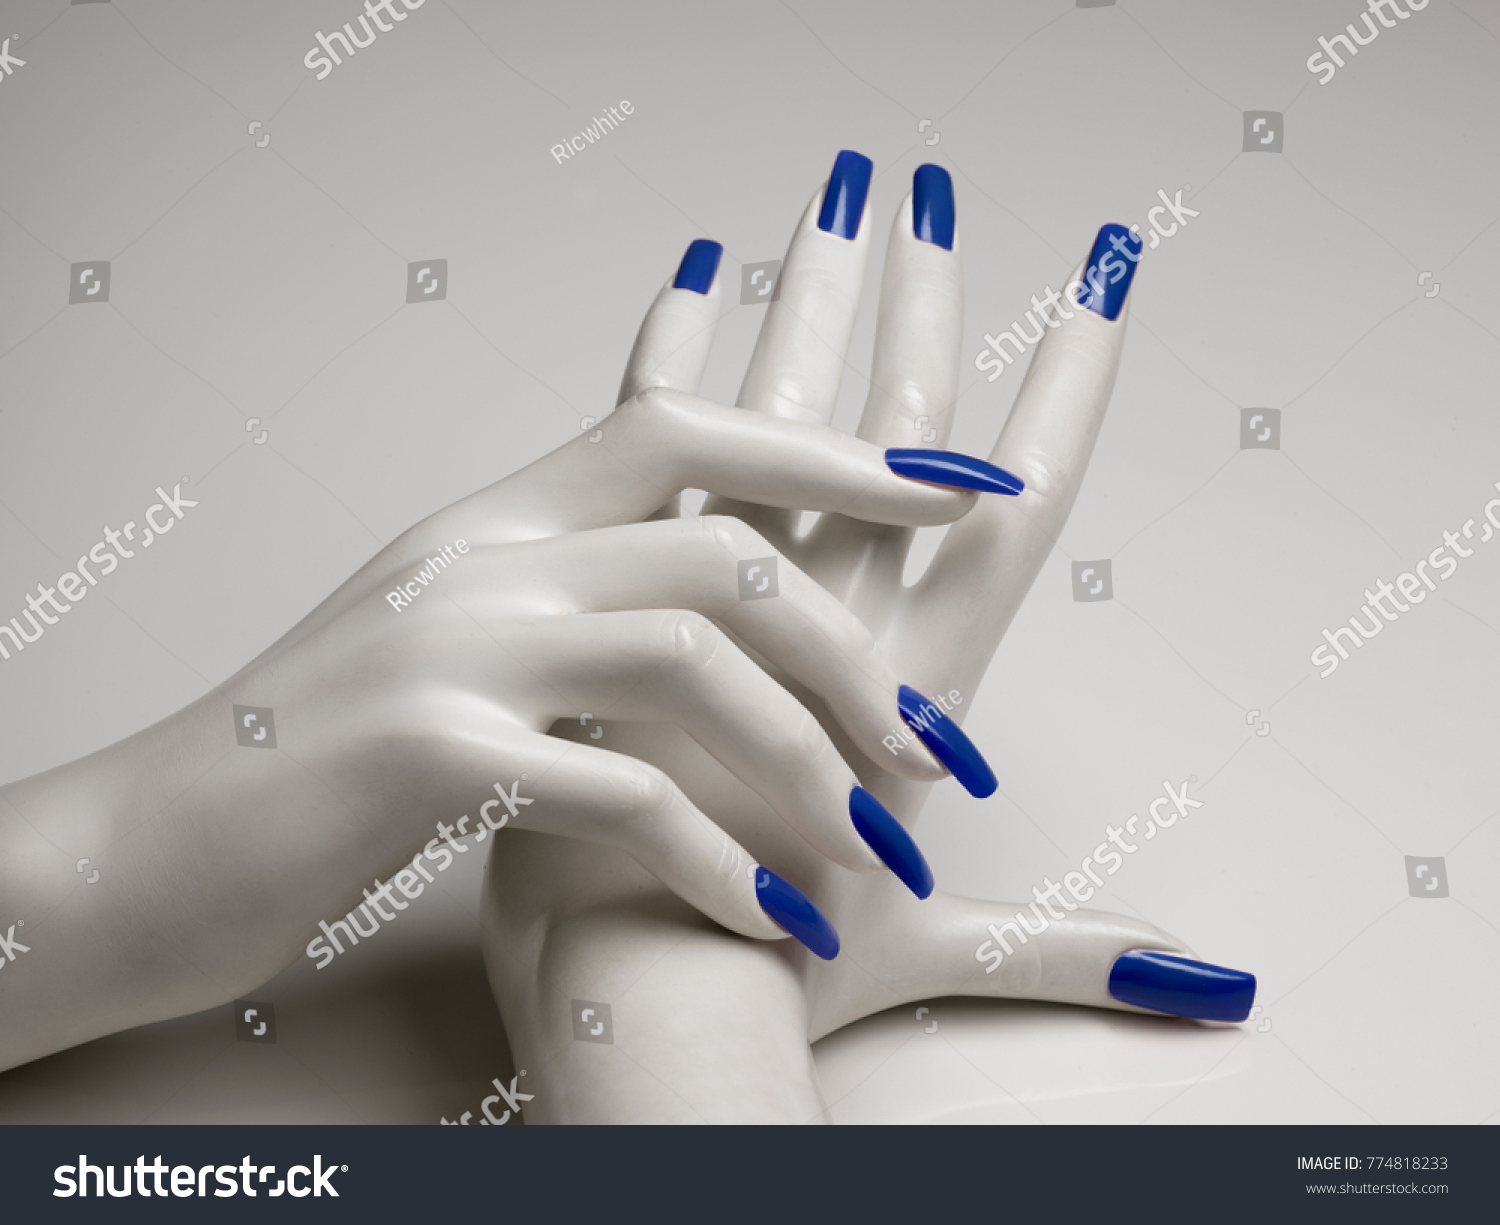 Mannequin Hands Perfect Manicure Blue Nail Stock Photo 774818233 ...